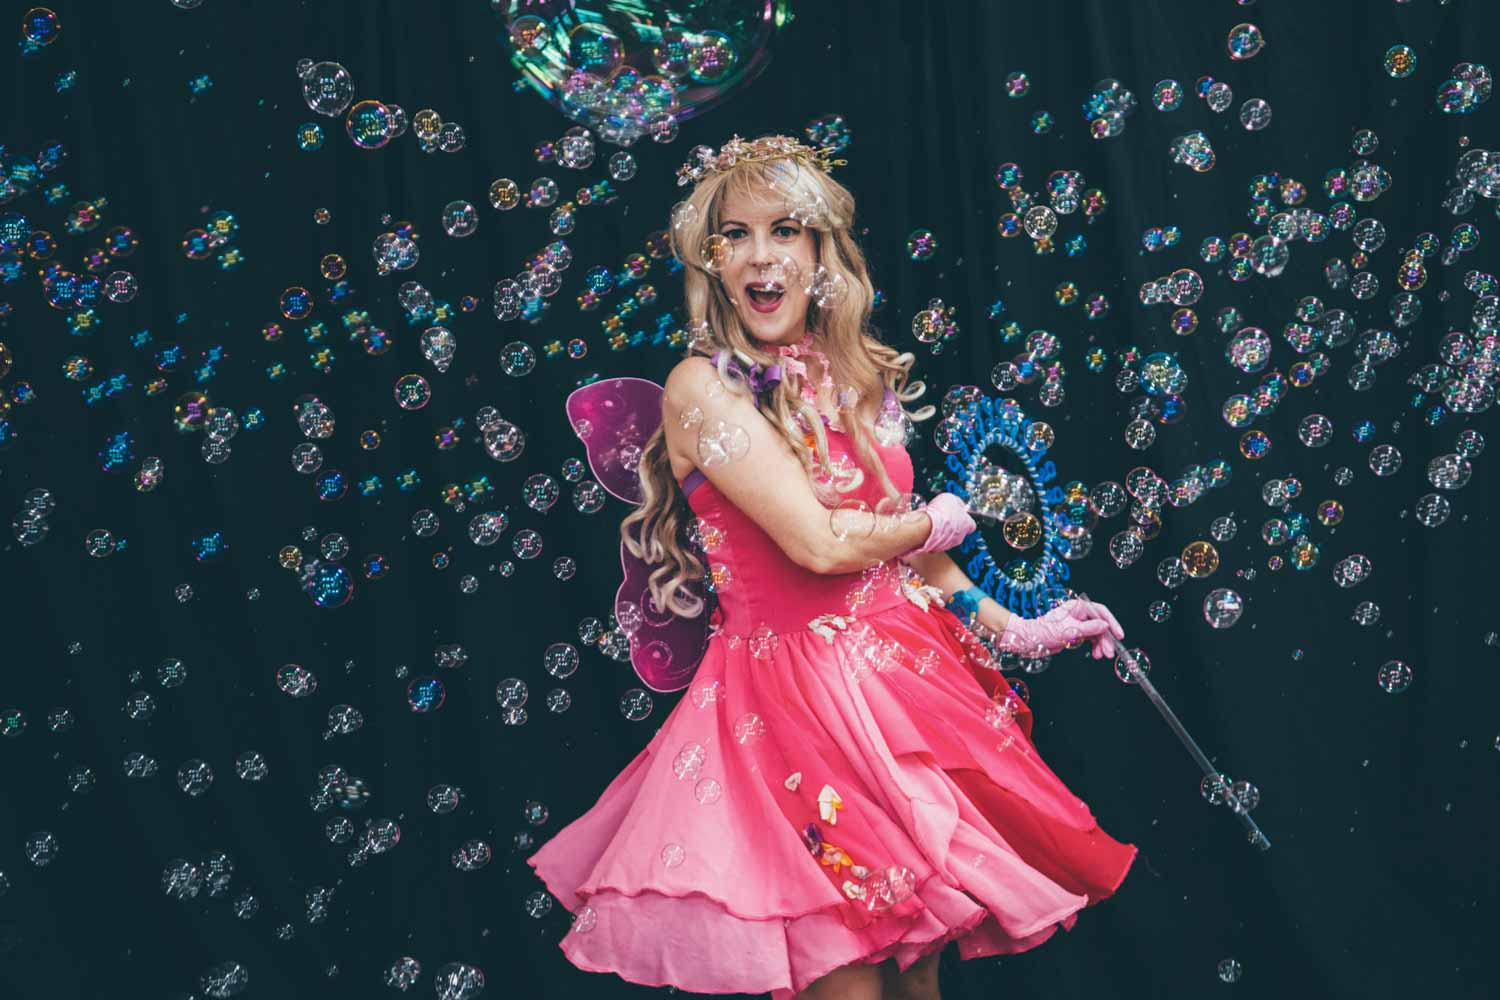 All the kids were entertained by this amazing bubble fairy with her repertoire of bubble tricks for Mahill's birthday party celebration.